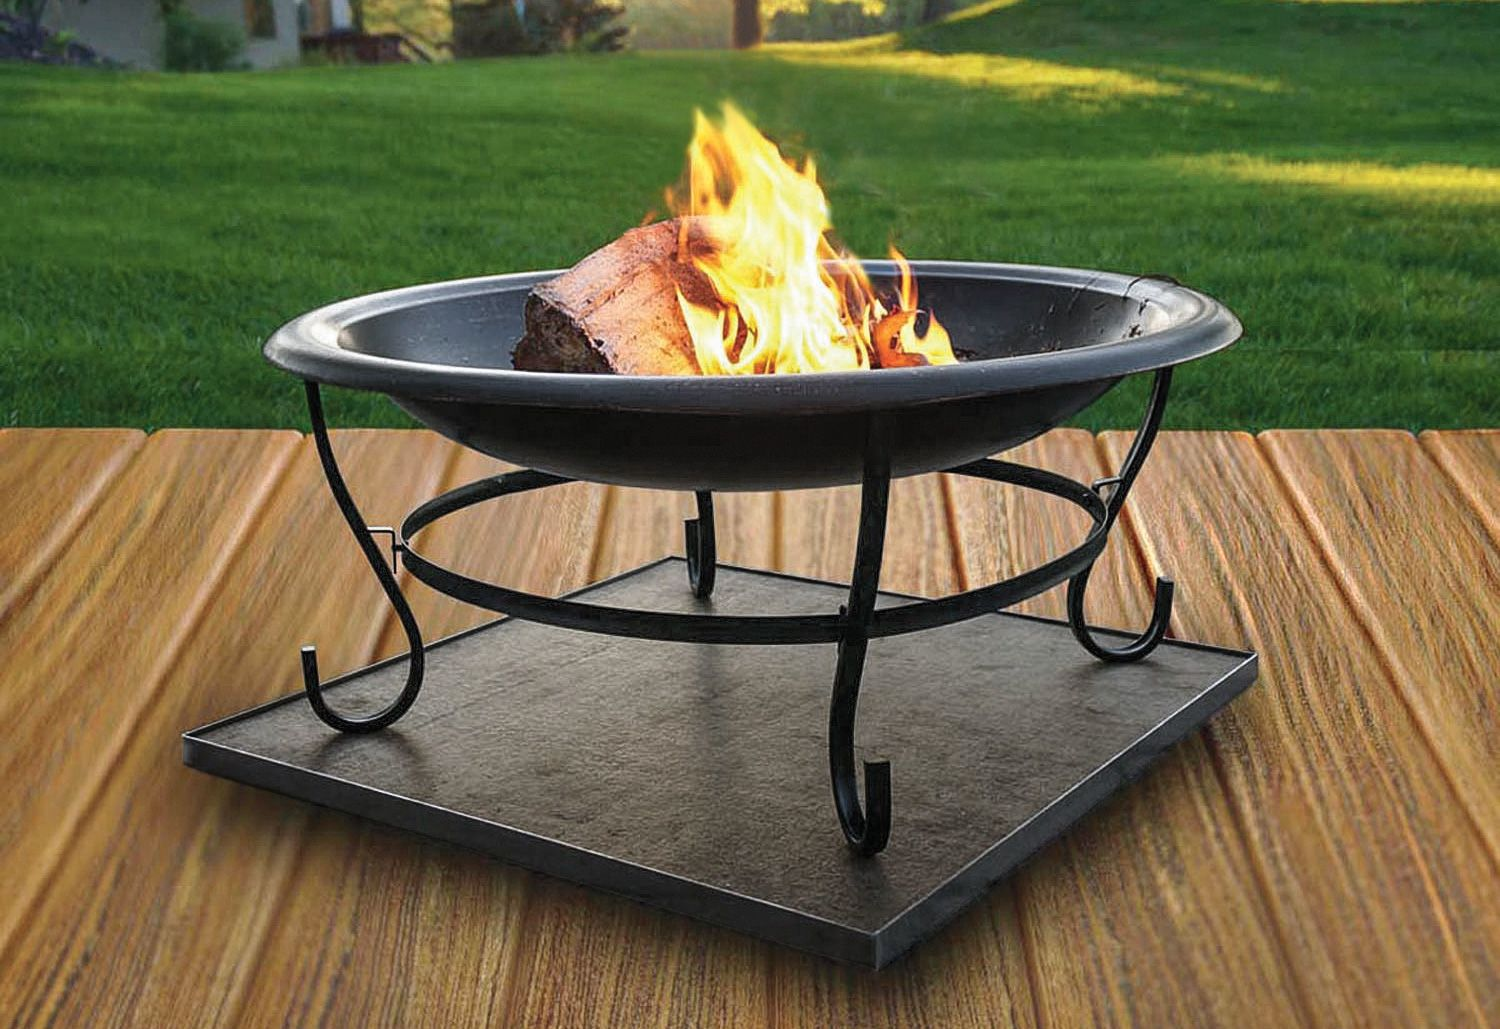 All About Fire Pits With Images Fire Pit Maine House Fire